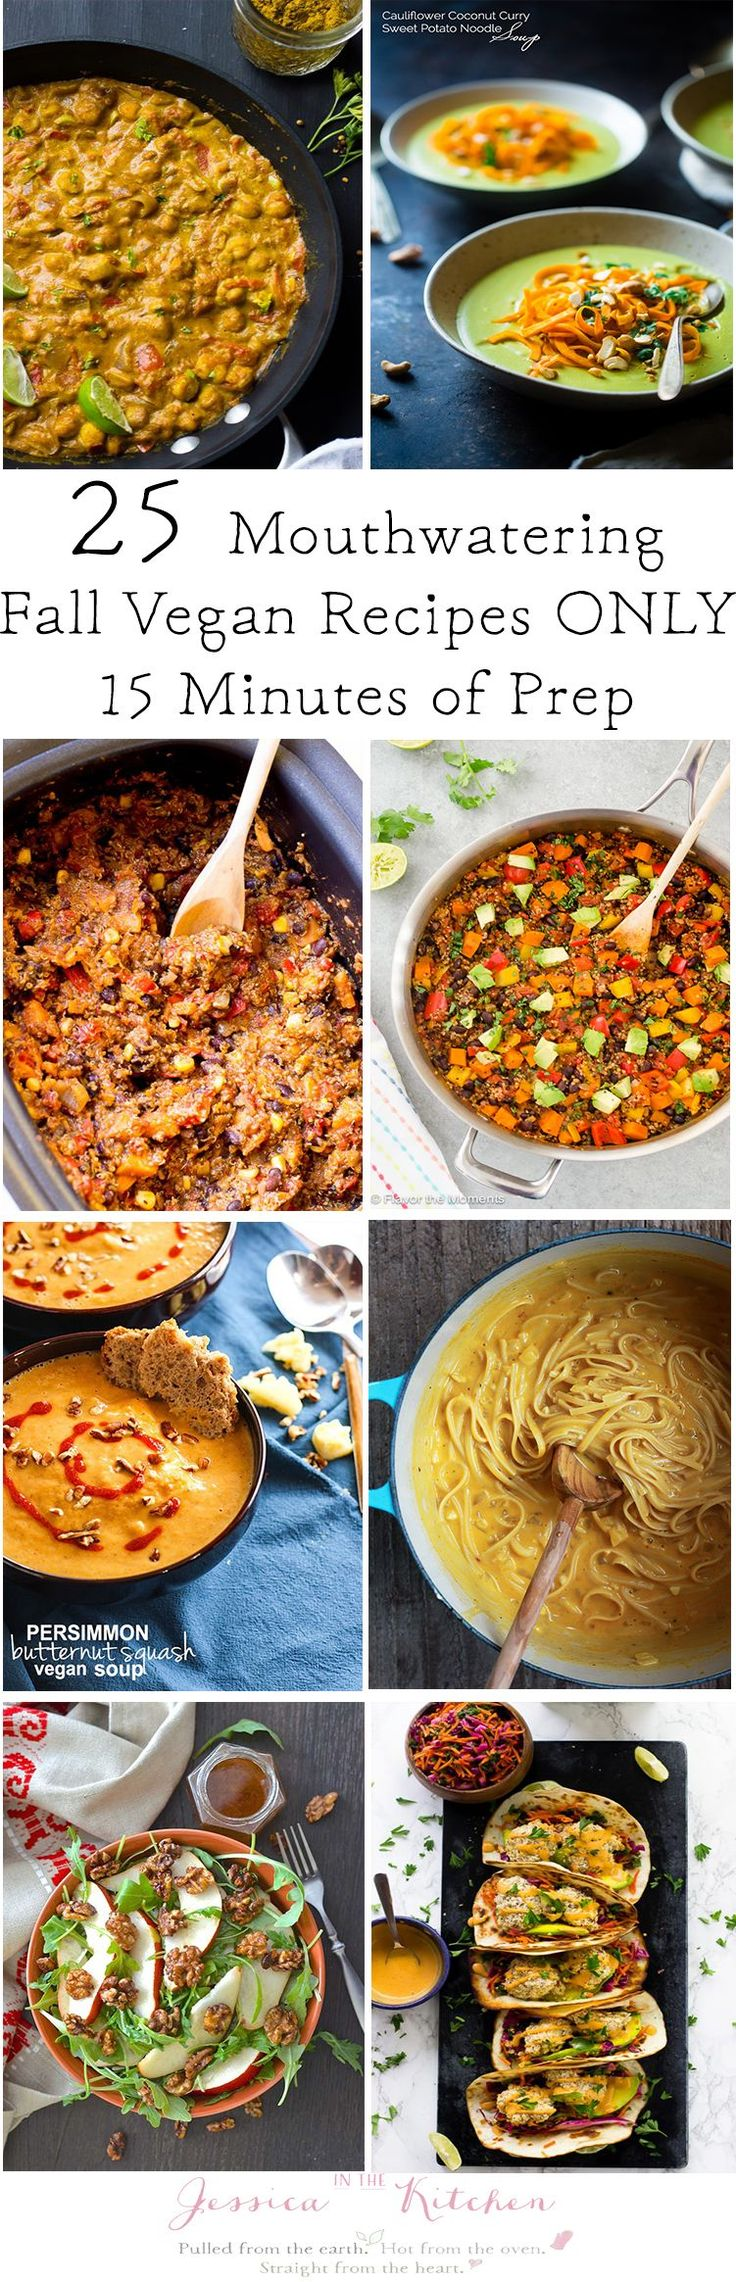 25 Mouthwatering Fall Vegan Dinner Recipes that take only 15 minutes of prep that you NEED to make!